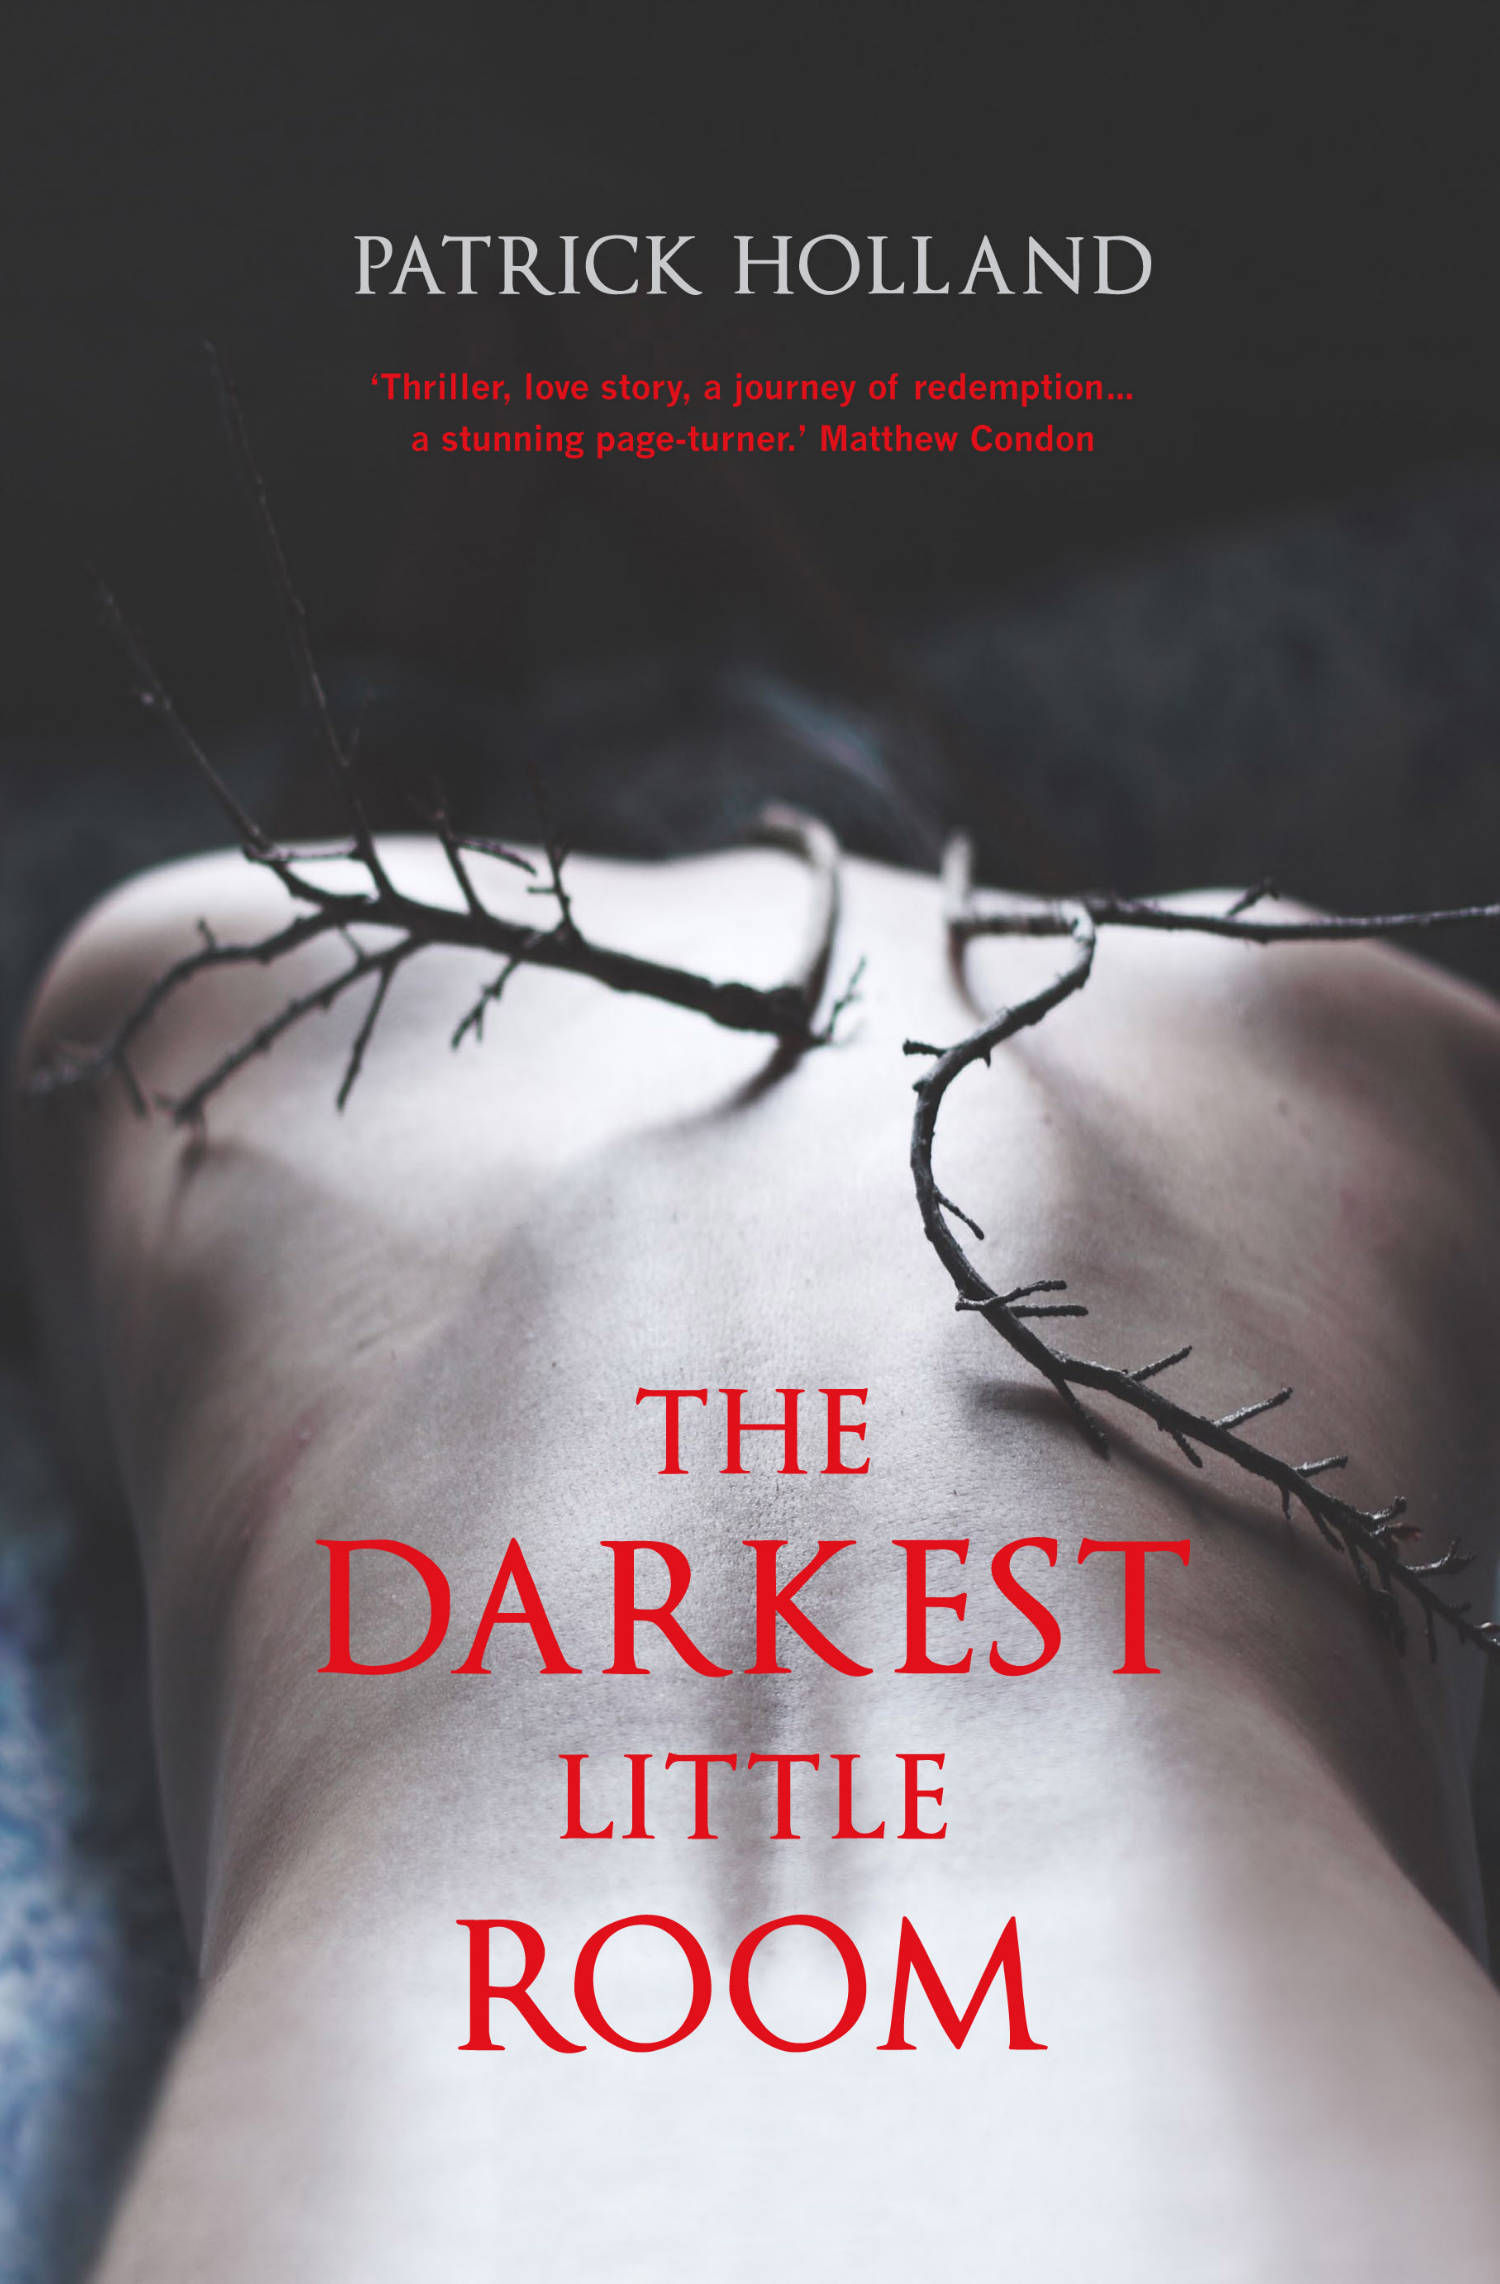 The Darkest Little Room